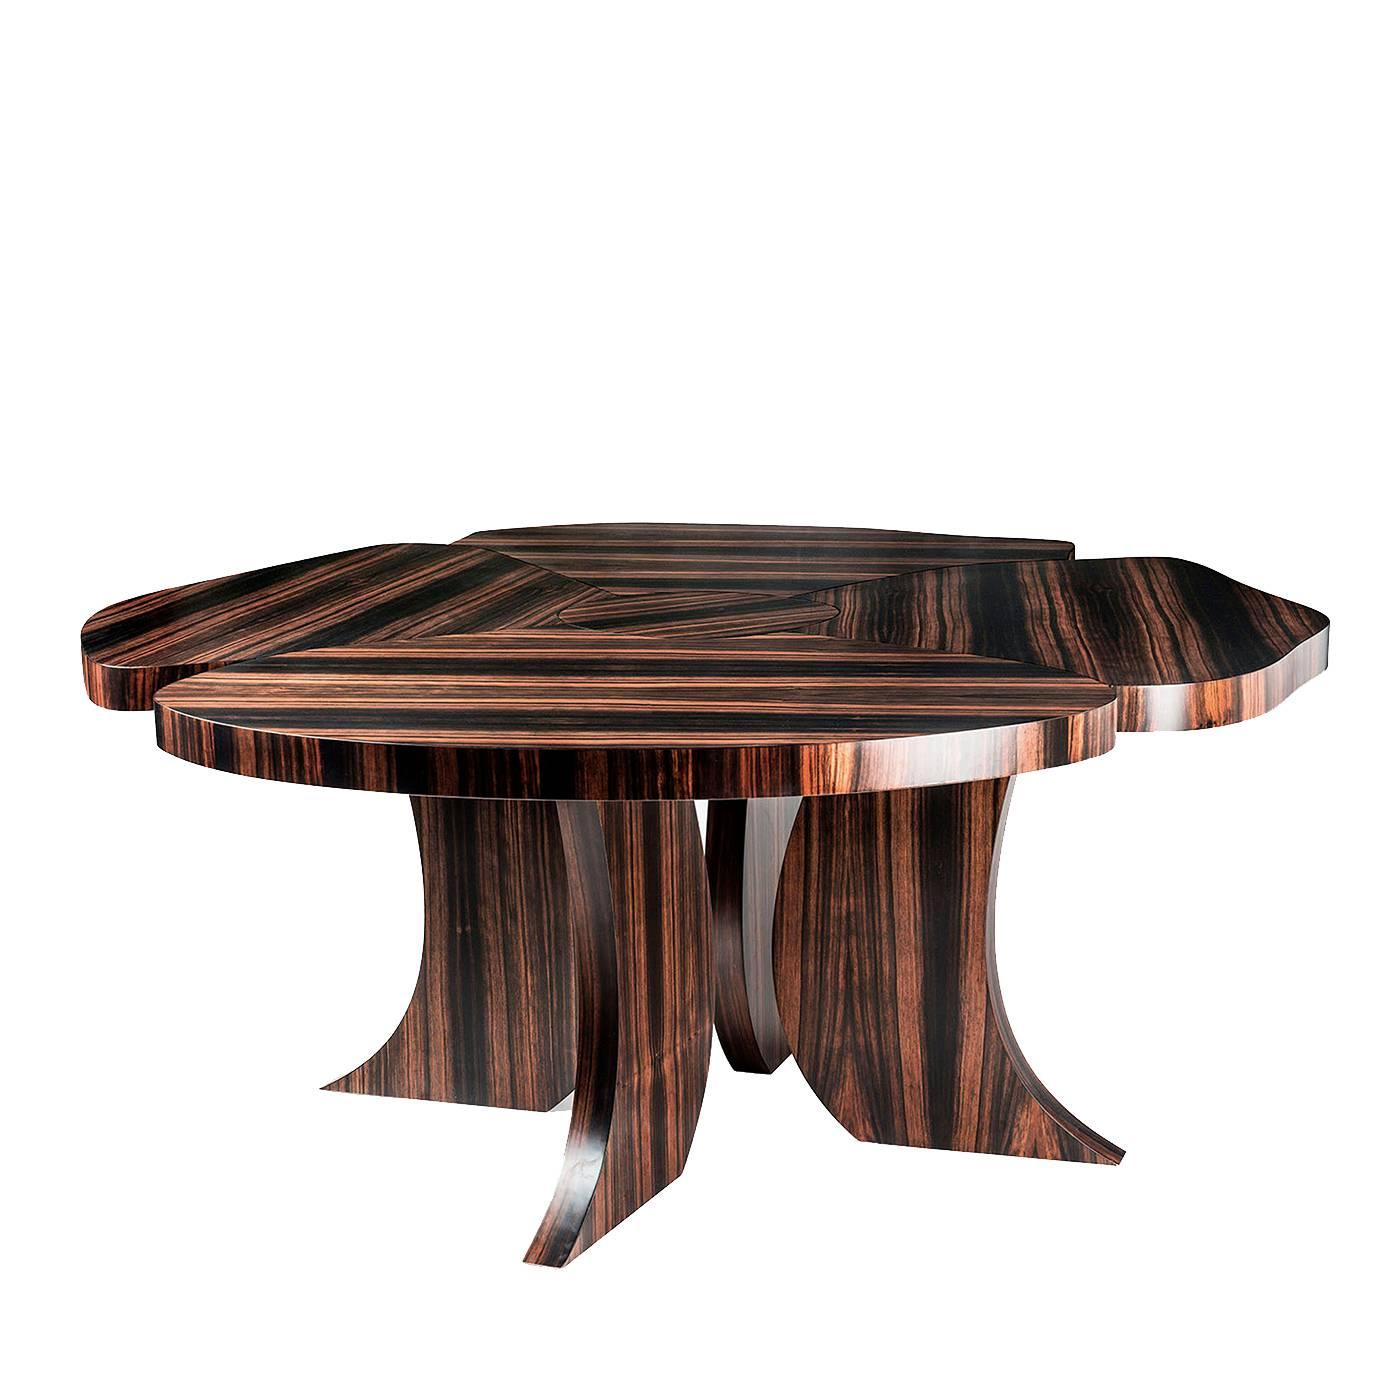 Stunning U0027Andyu0027 Dining Table With A Contemporary Design